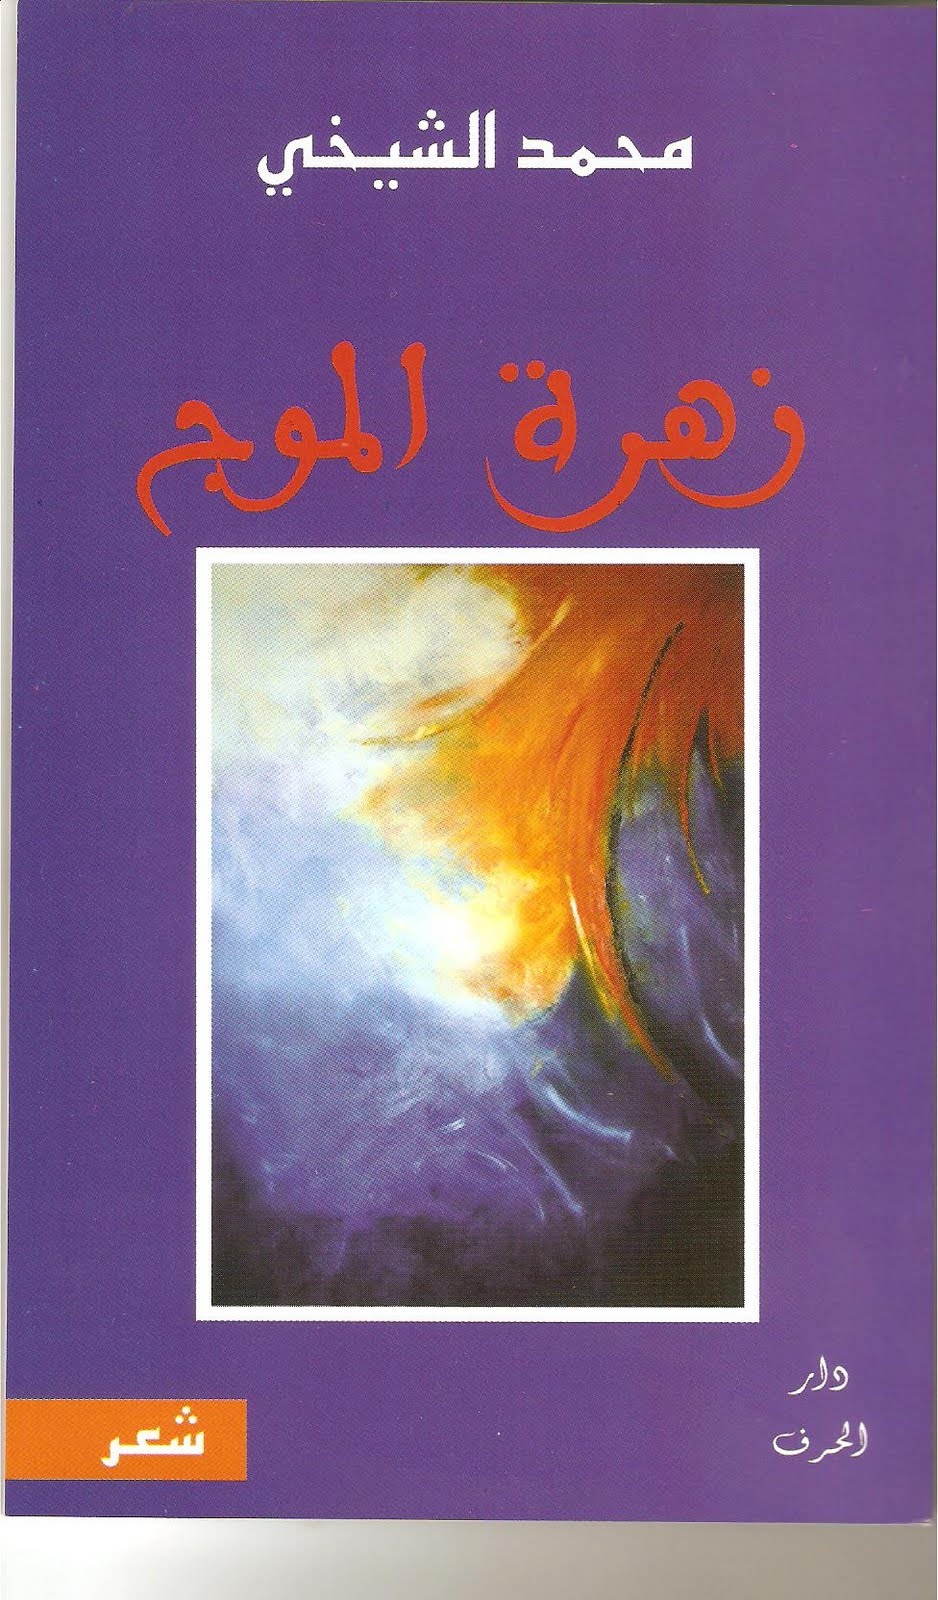 Century 20 21 4 Bibliographic Moroccan Poetry Novel Burned Alive Oleh Souad Mohammed Sheki